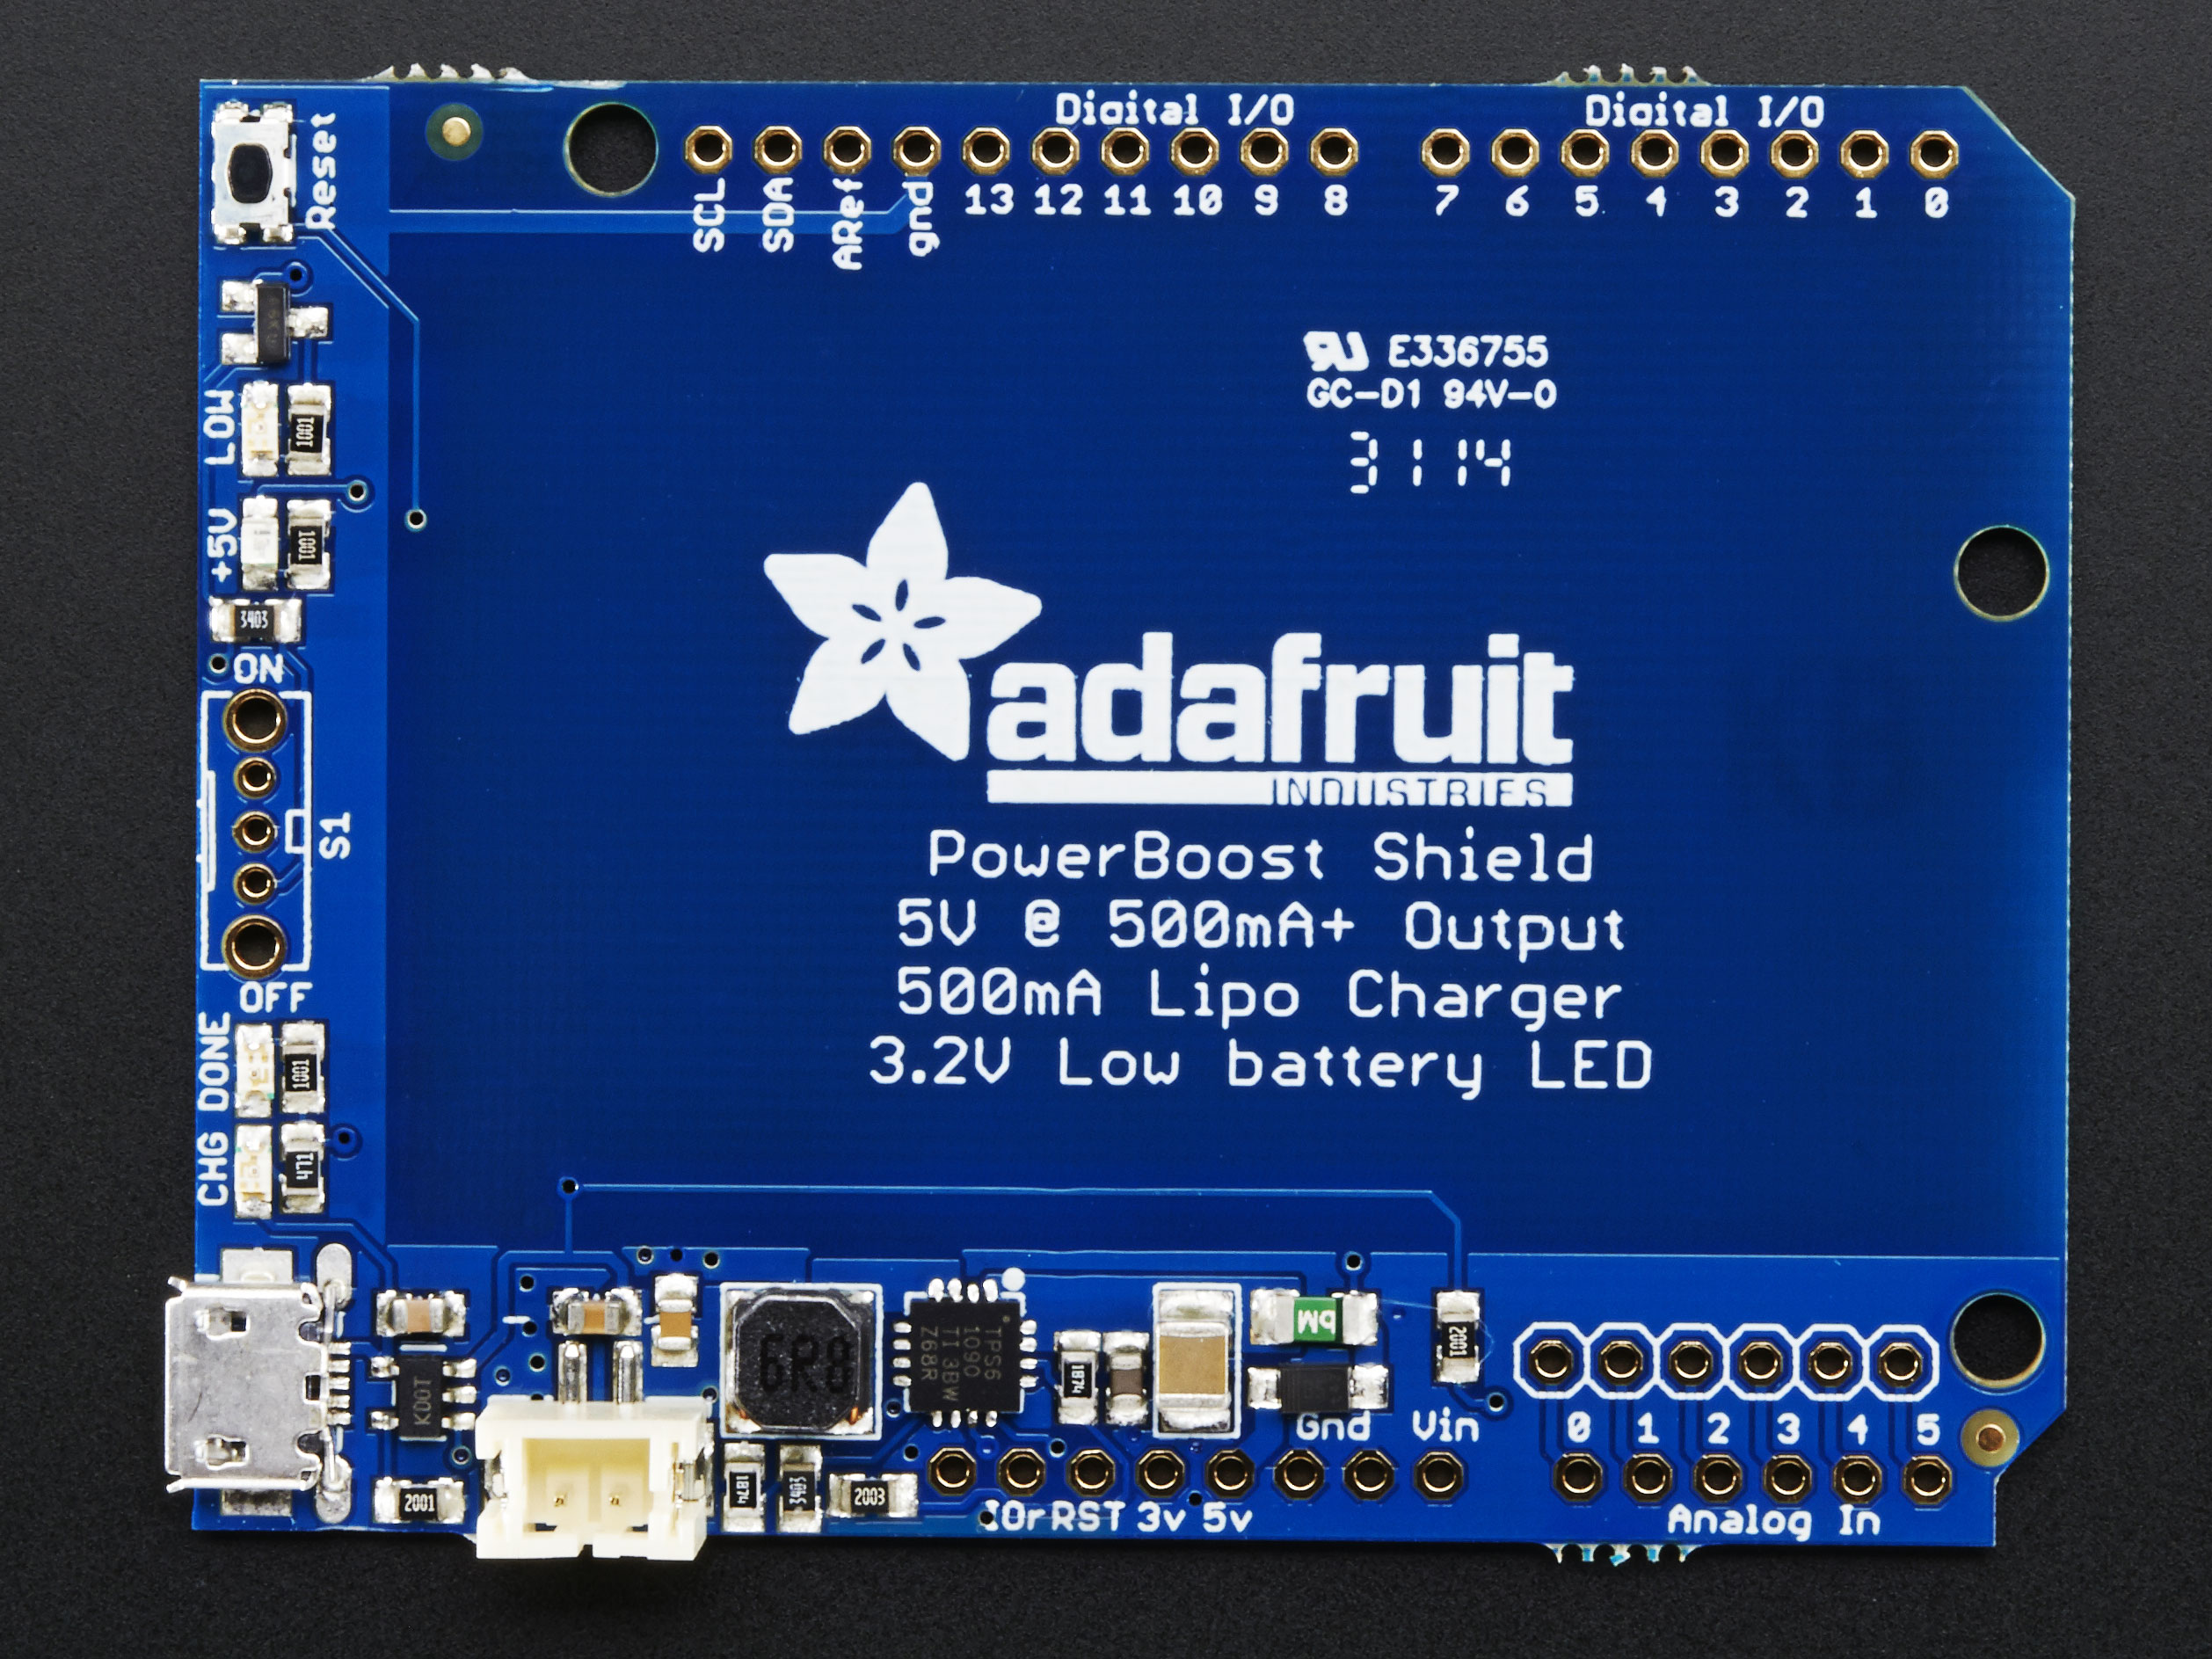 adafruit_products_top.jpg